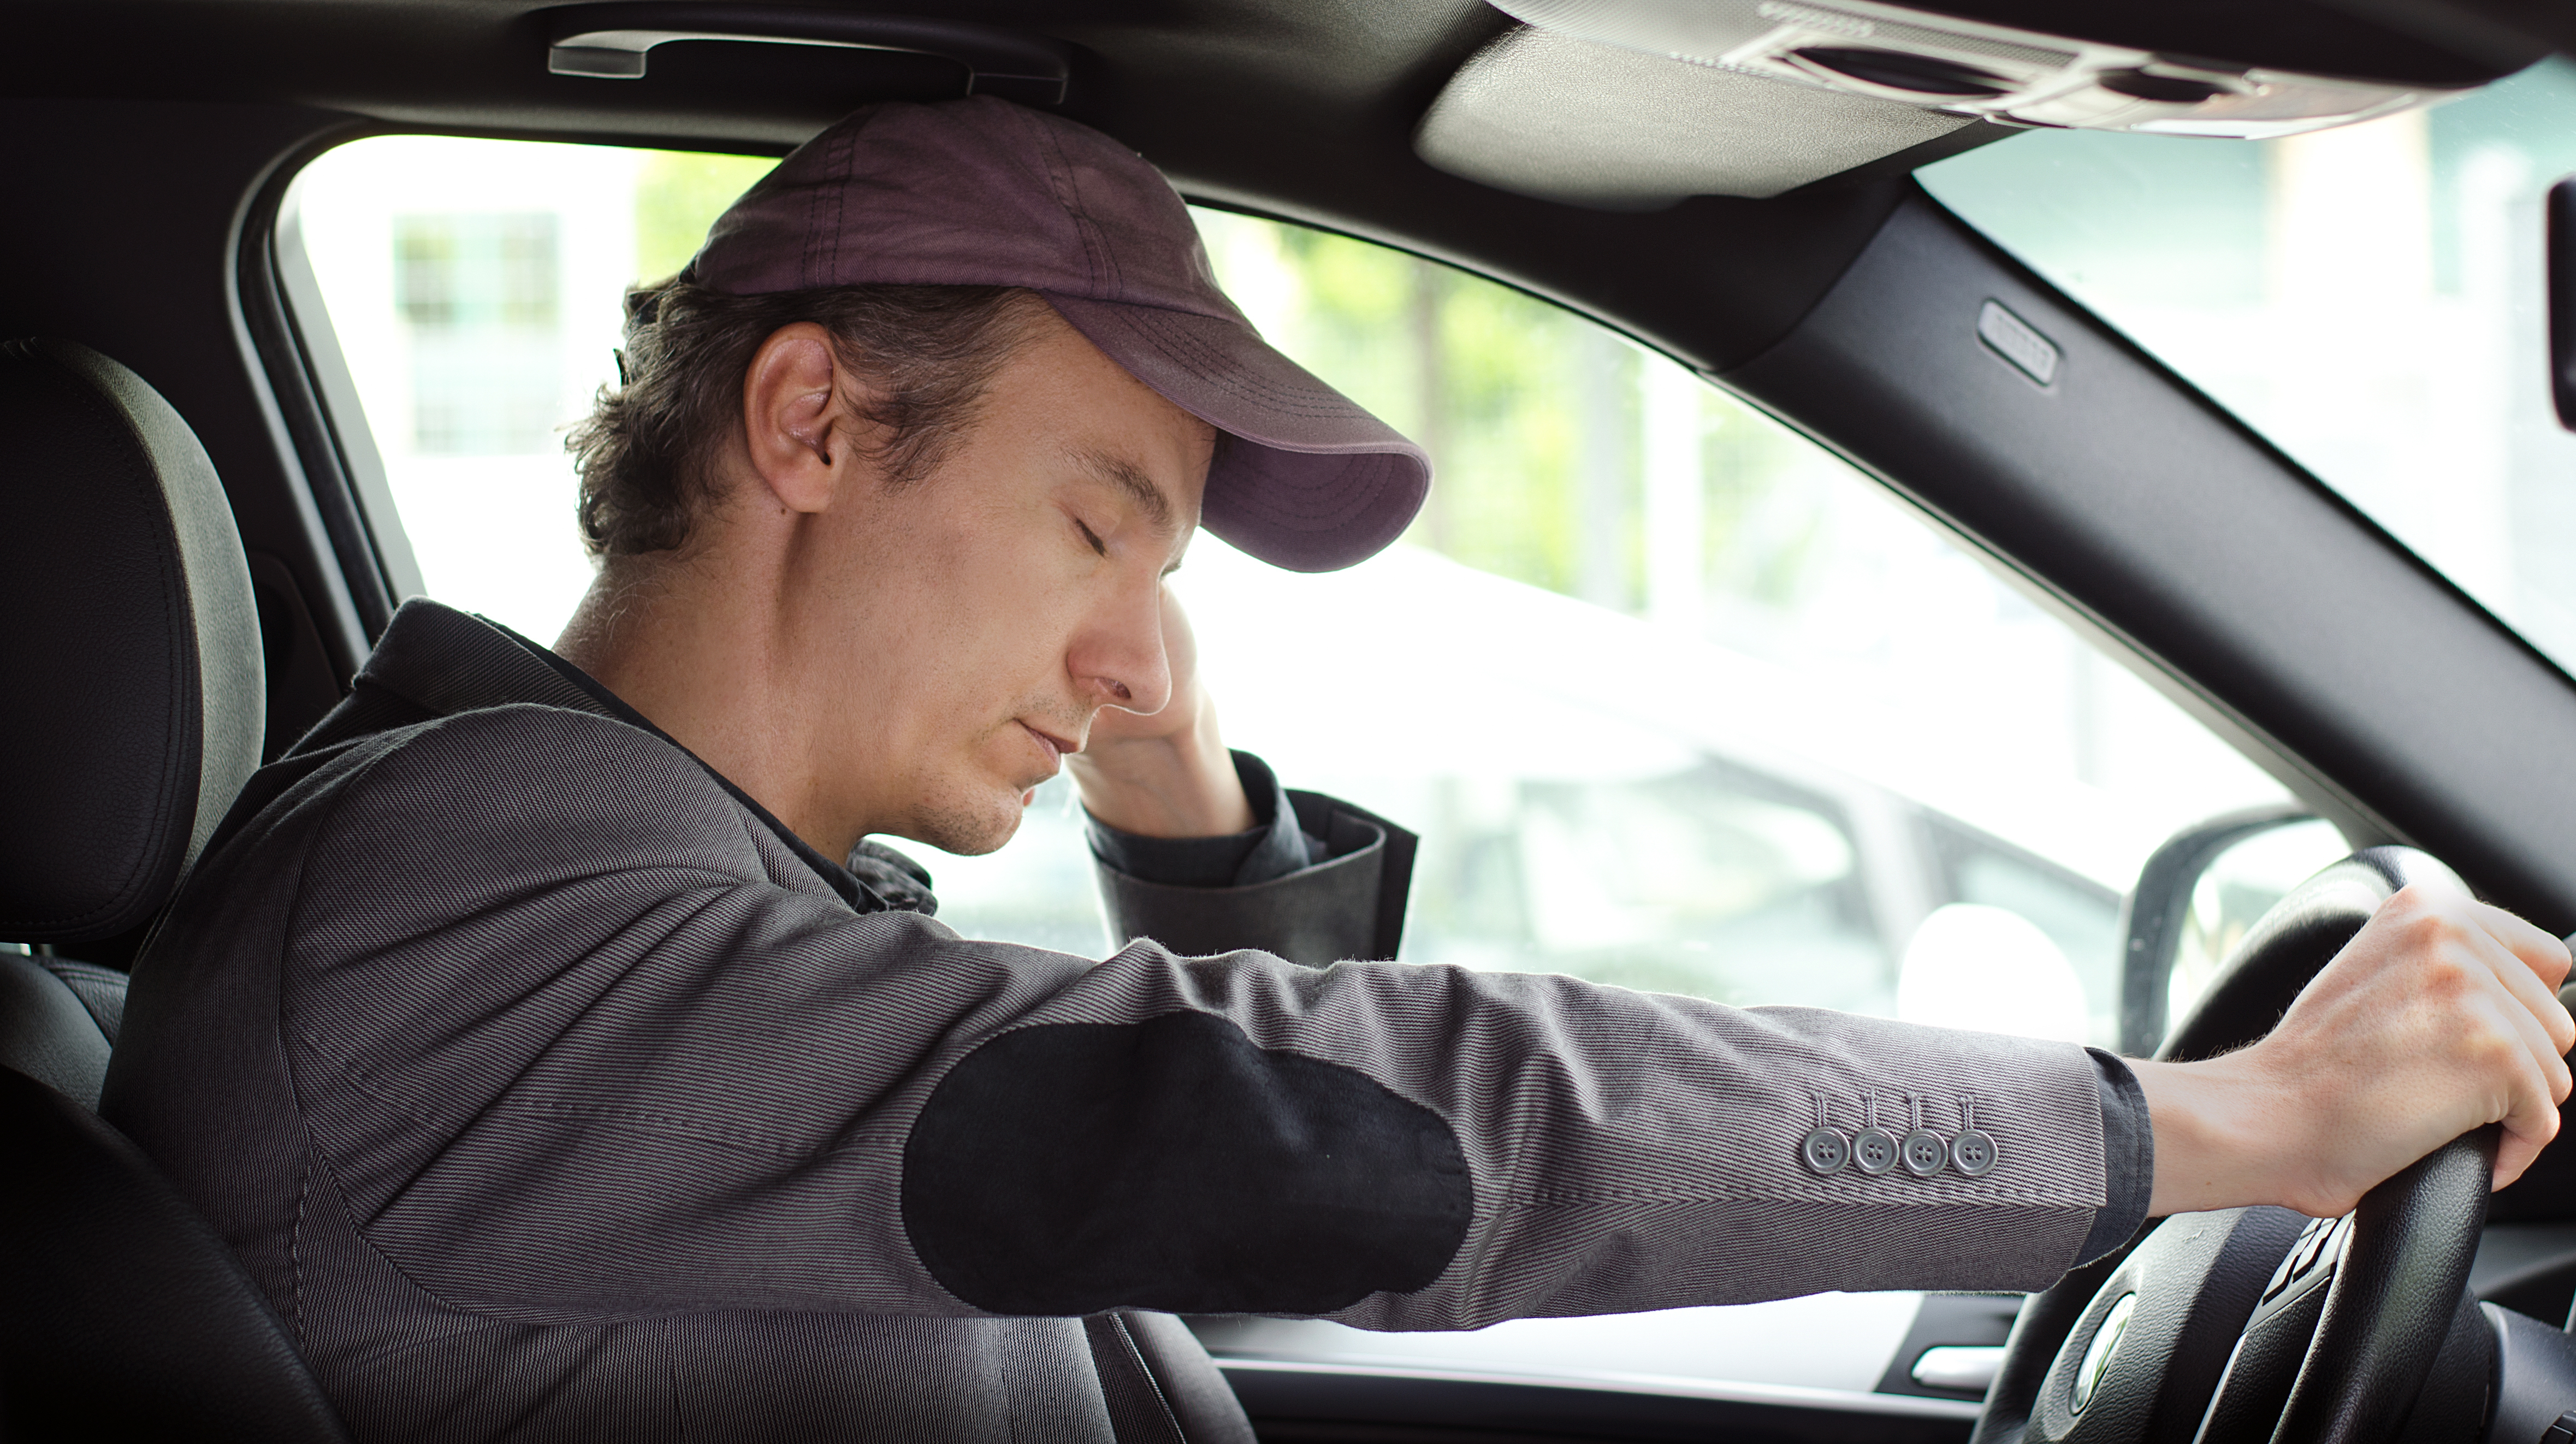 Ways to Prevent Drowsy Driving by Commercial Drivers